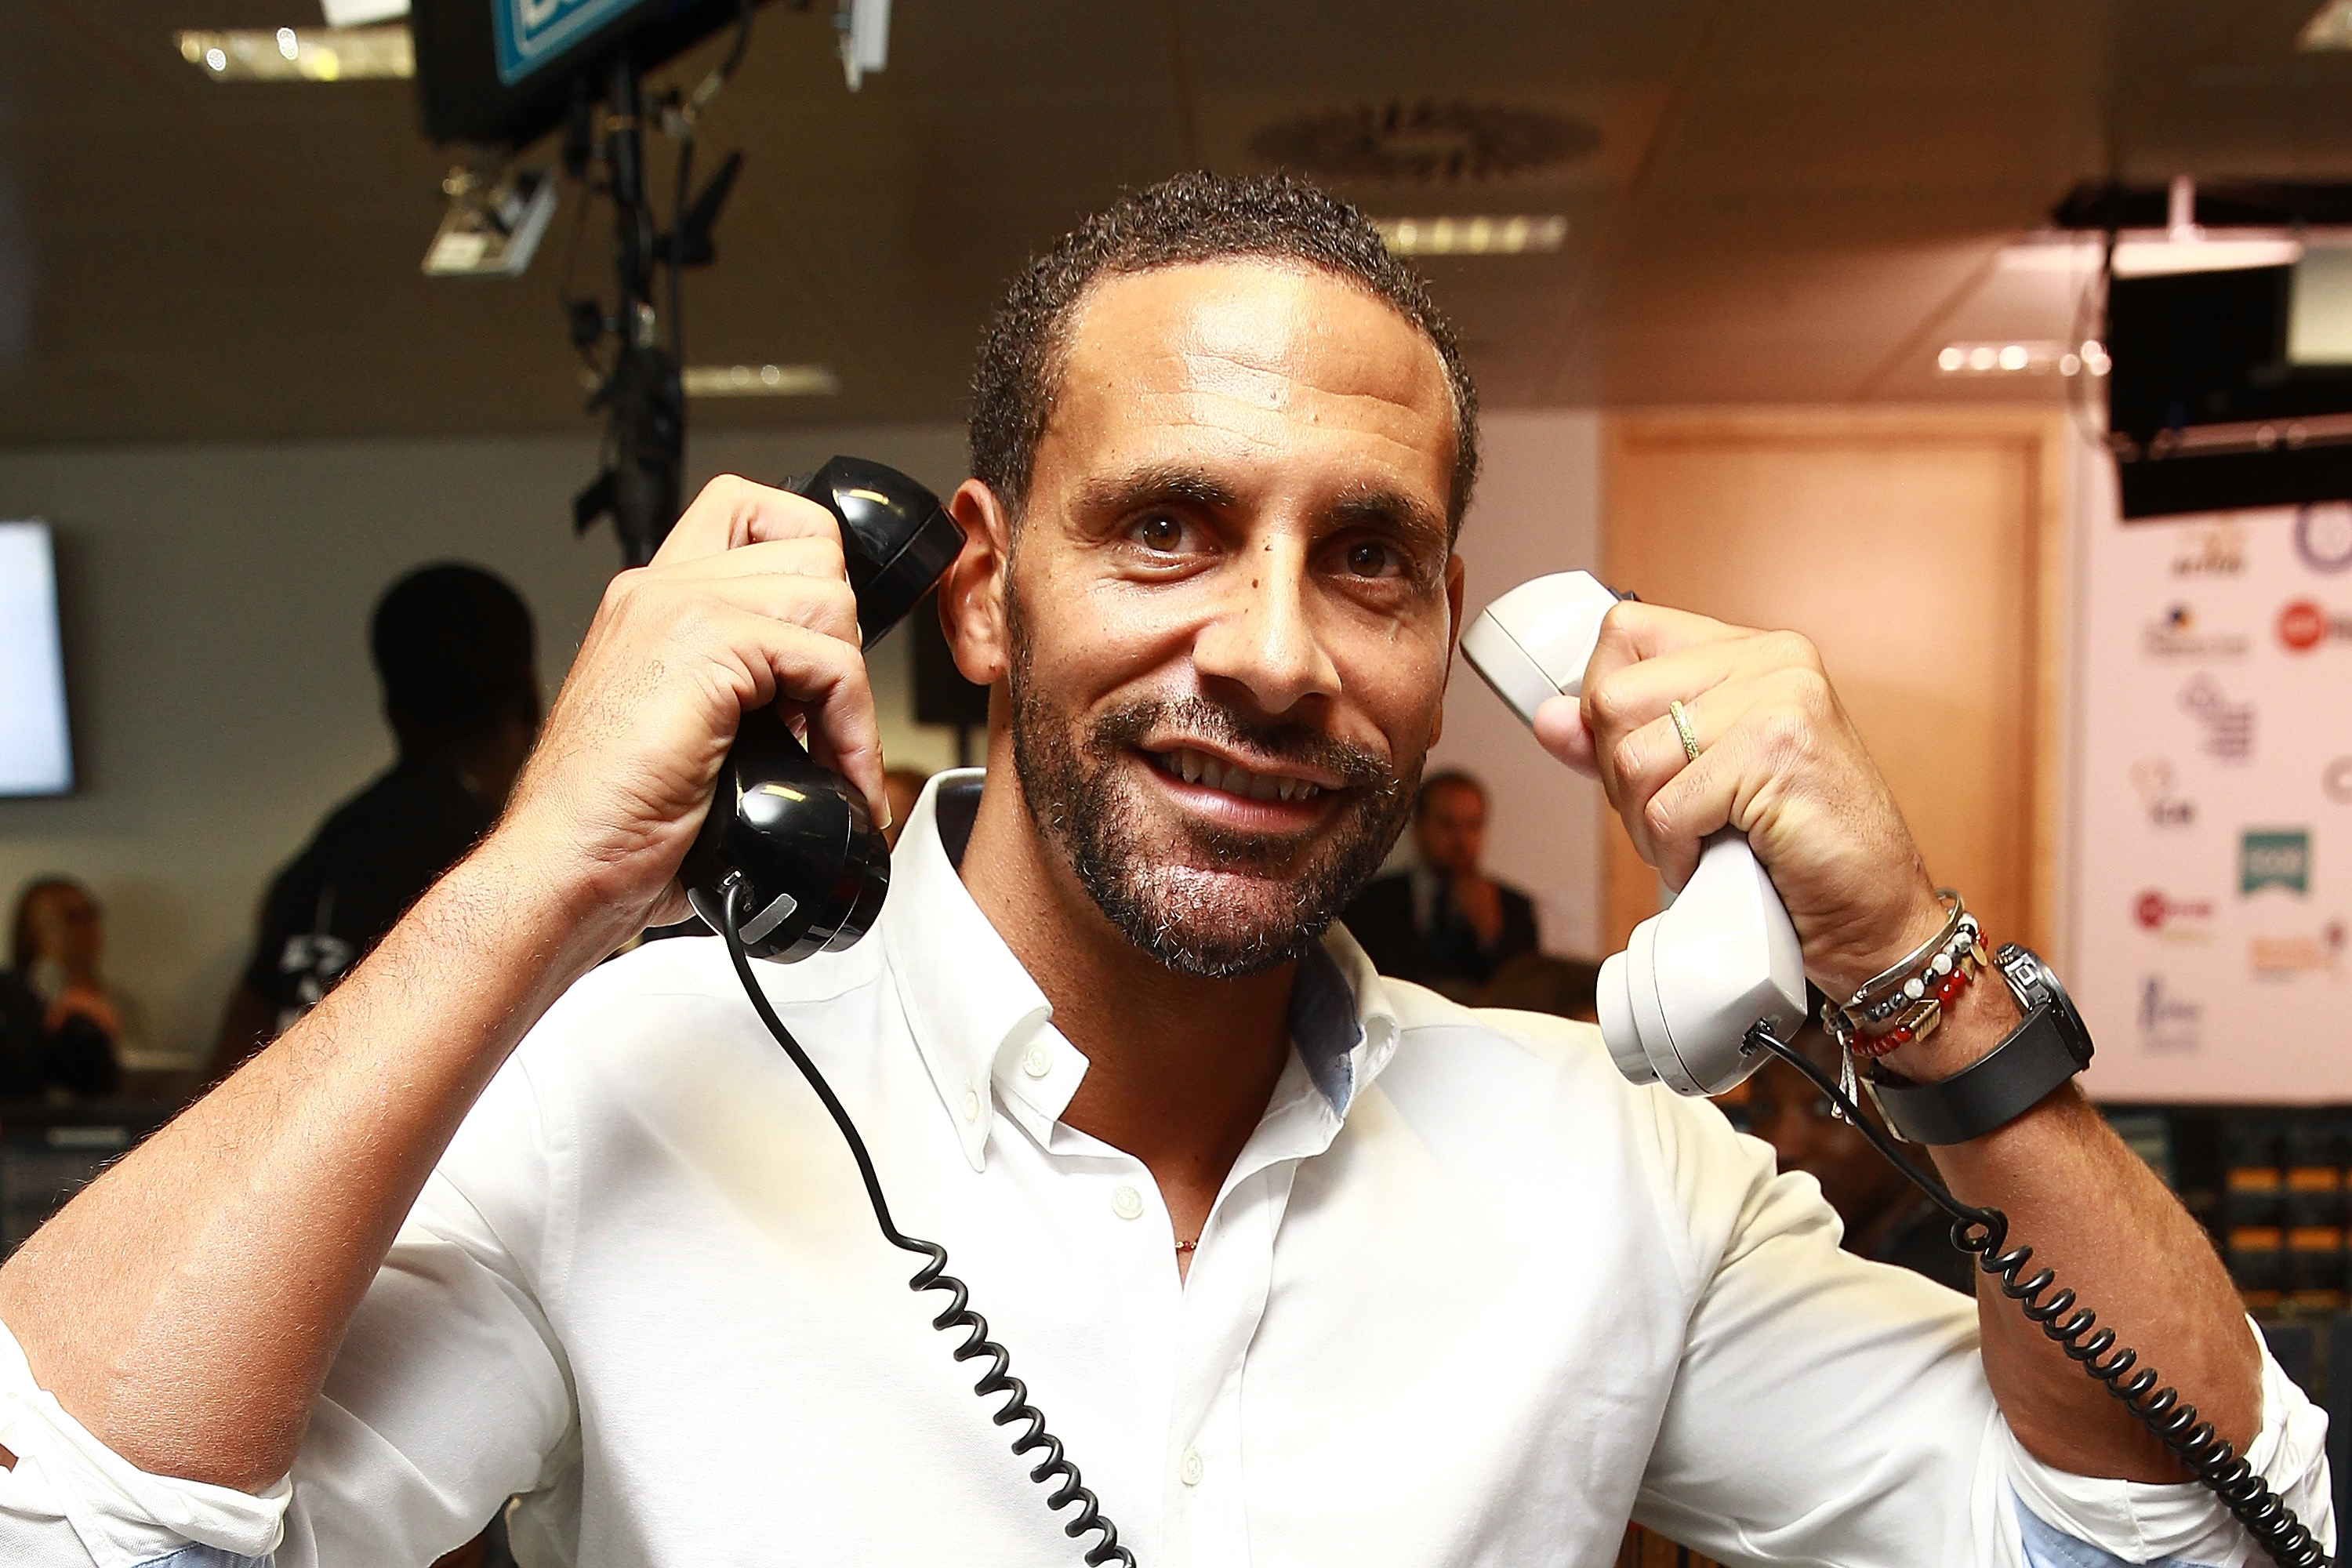 LONDON, ENGLAND - SEPTEMBER 11: Rio Ferdinand attends the annual BGC Global Chariry Day at BGC Partners on September 11, 2015 in London, England. (Photo by Fred Duval/Getty Images)